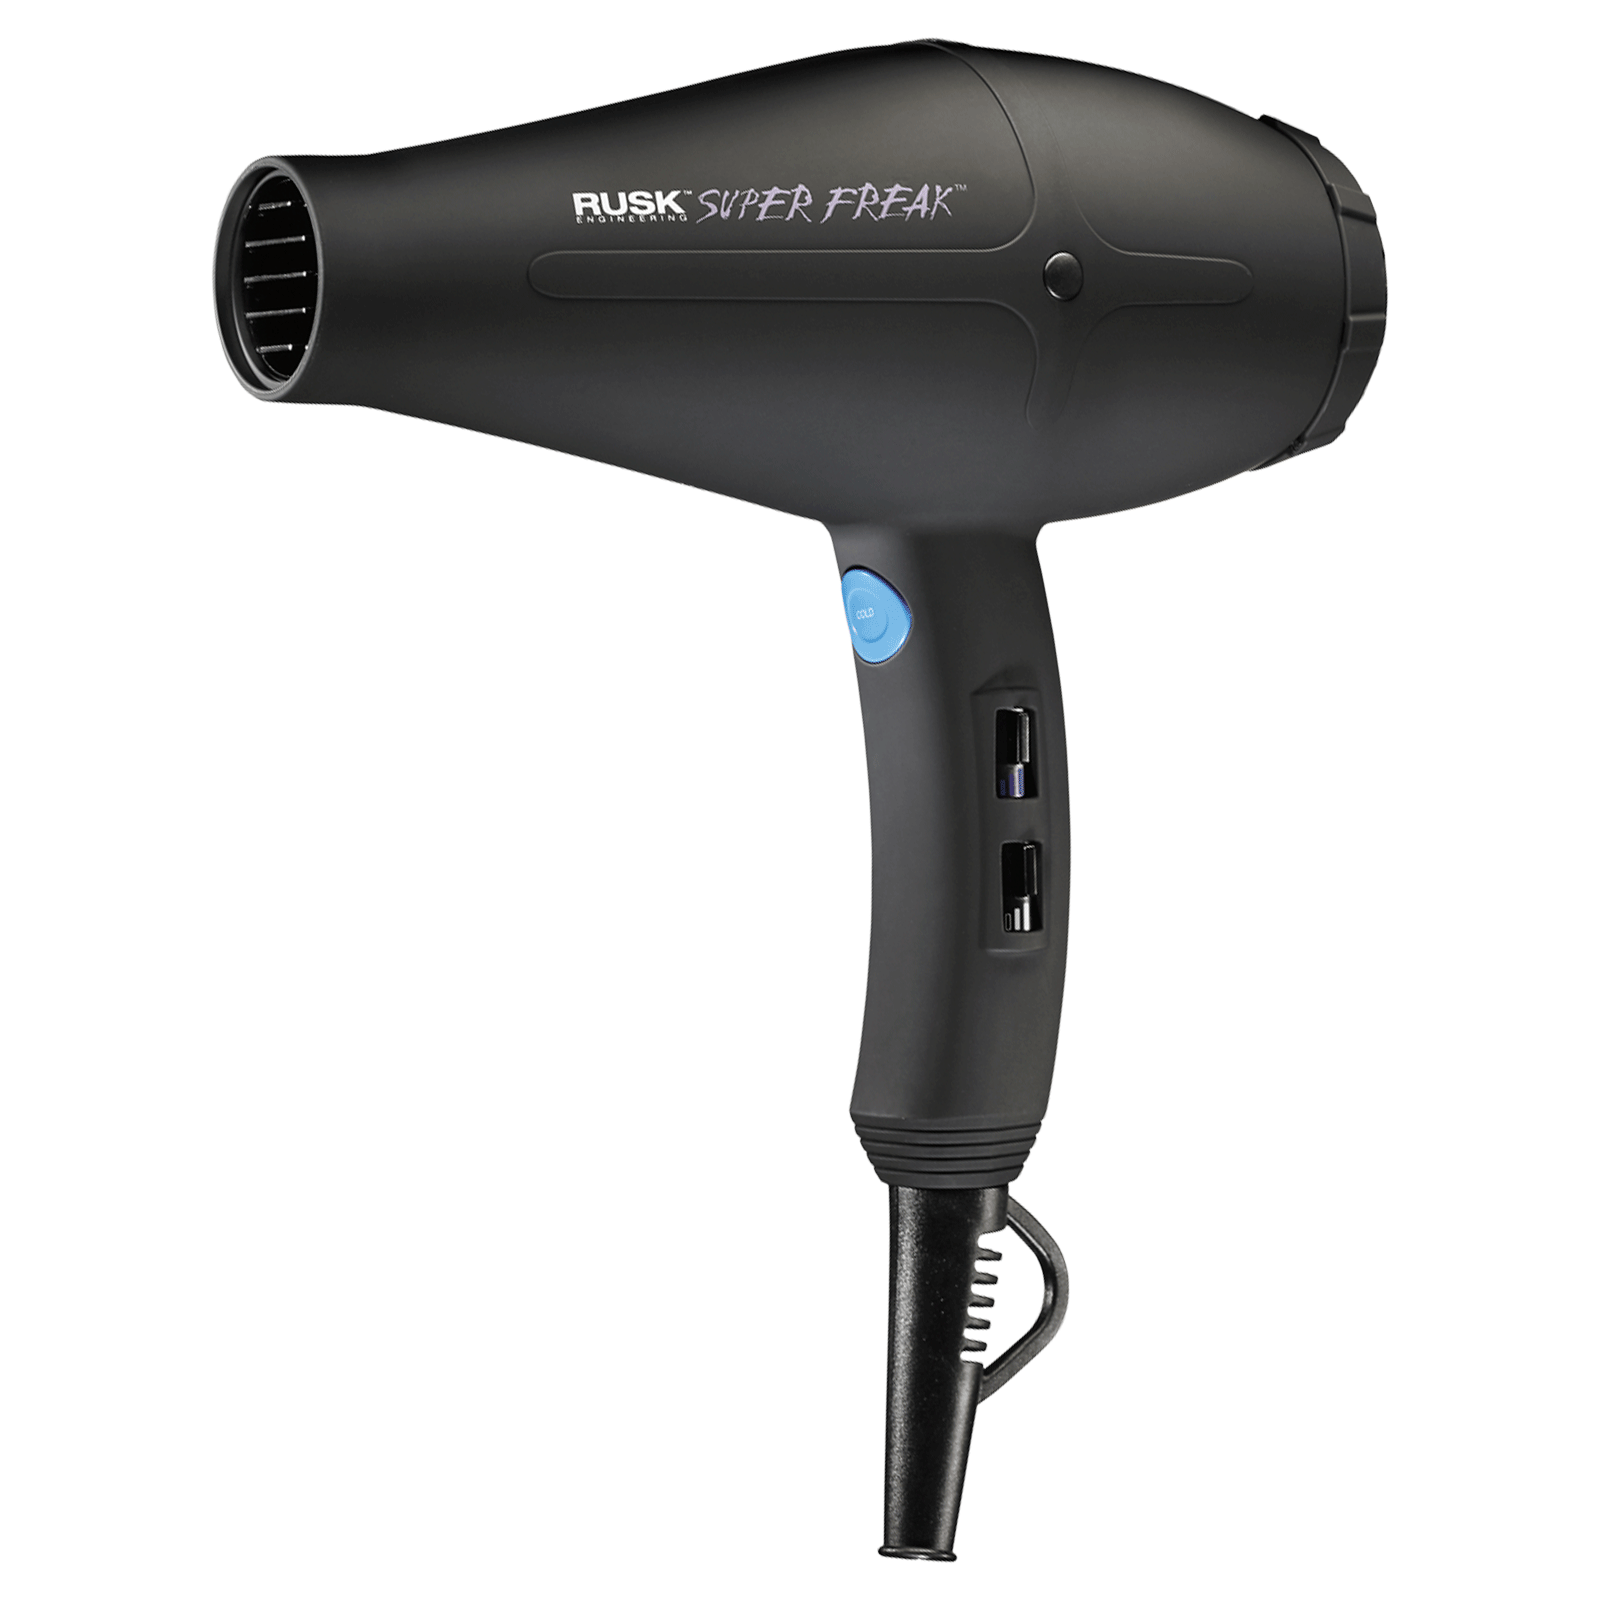 Super Freak 2000W Dryer